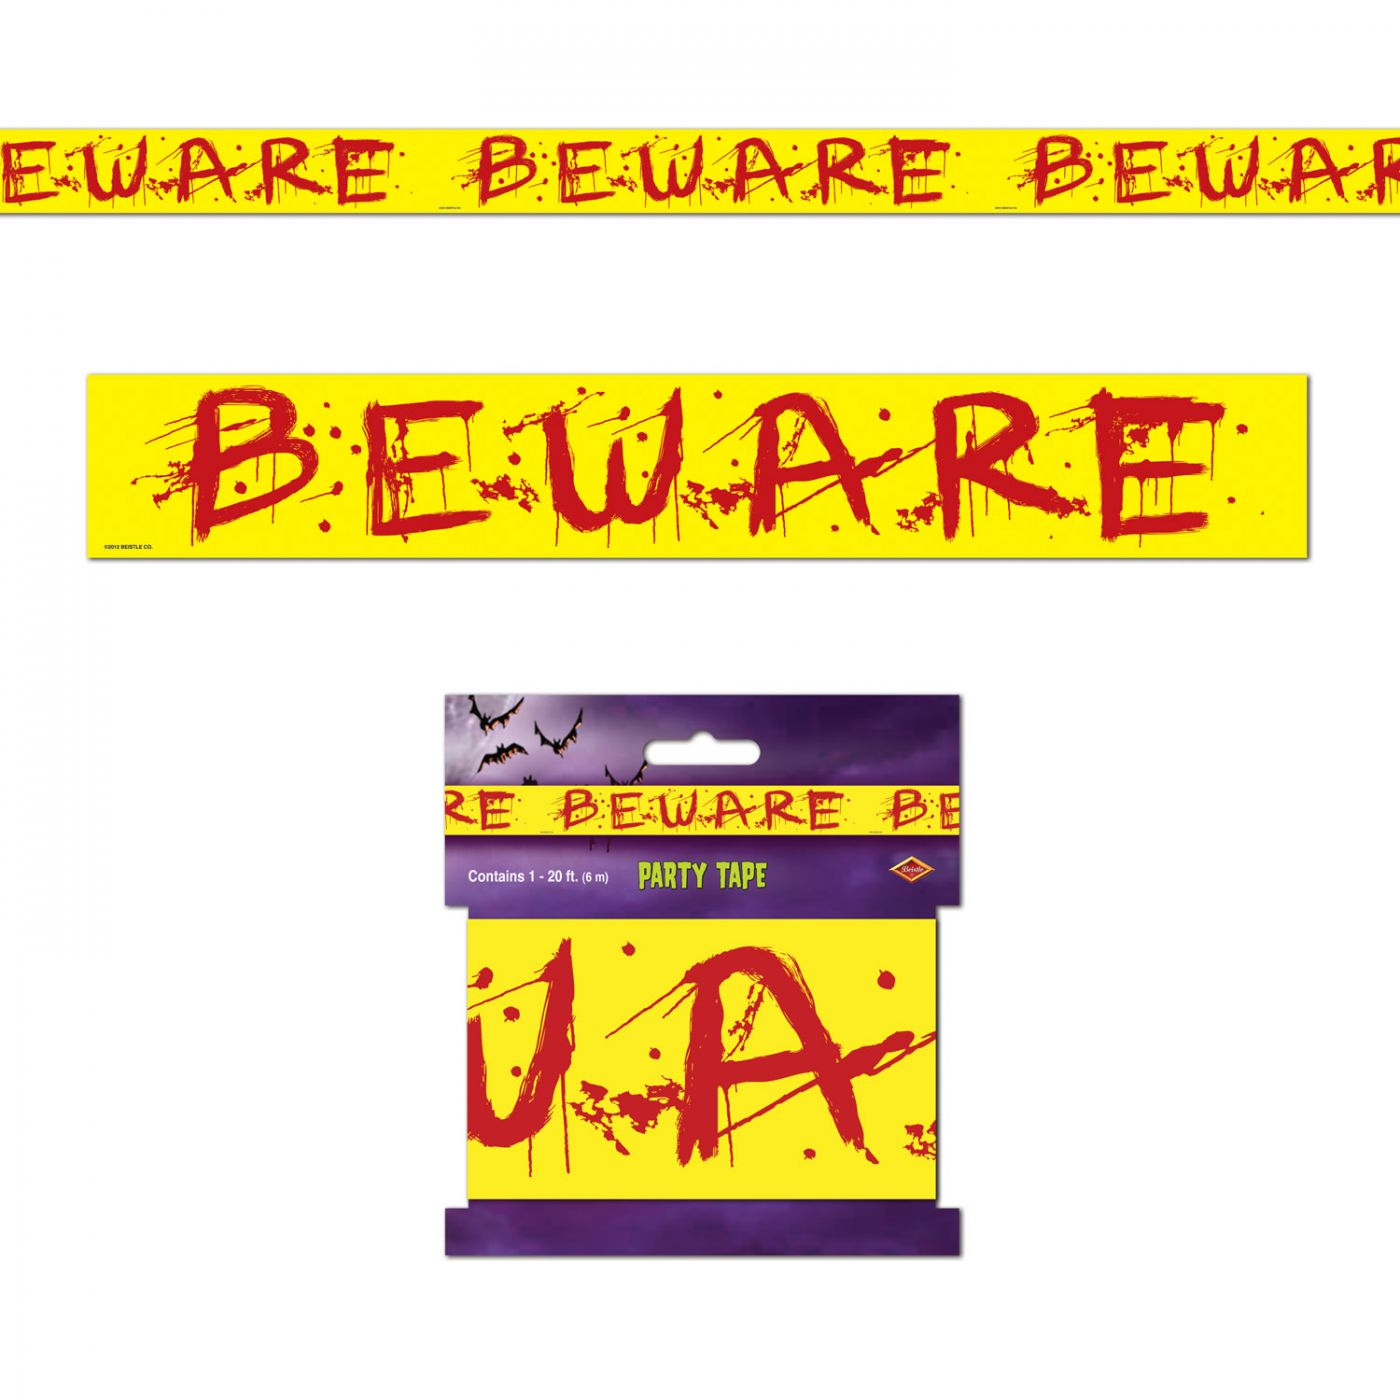 Beware Party Tape image